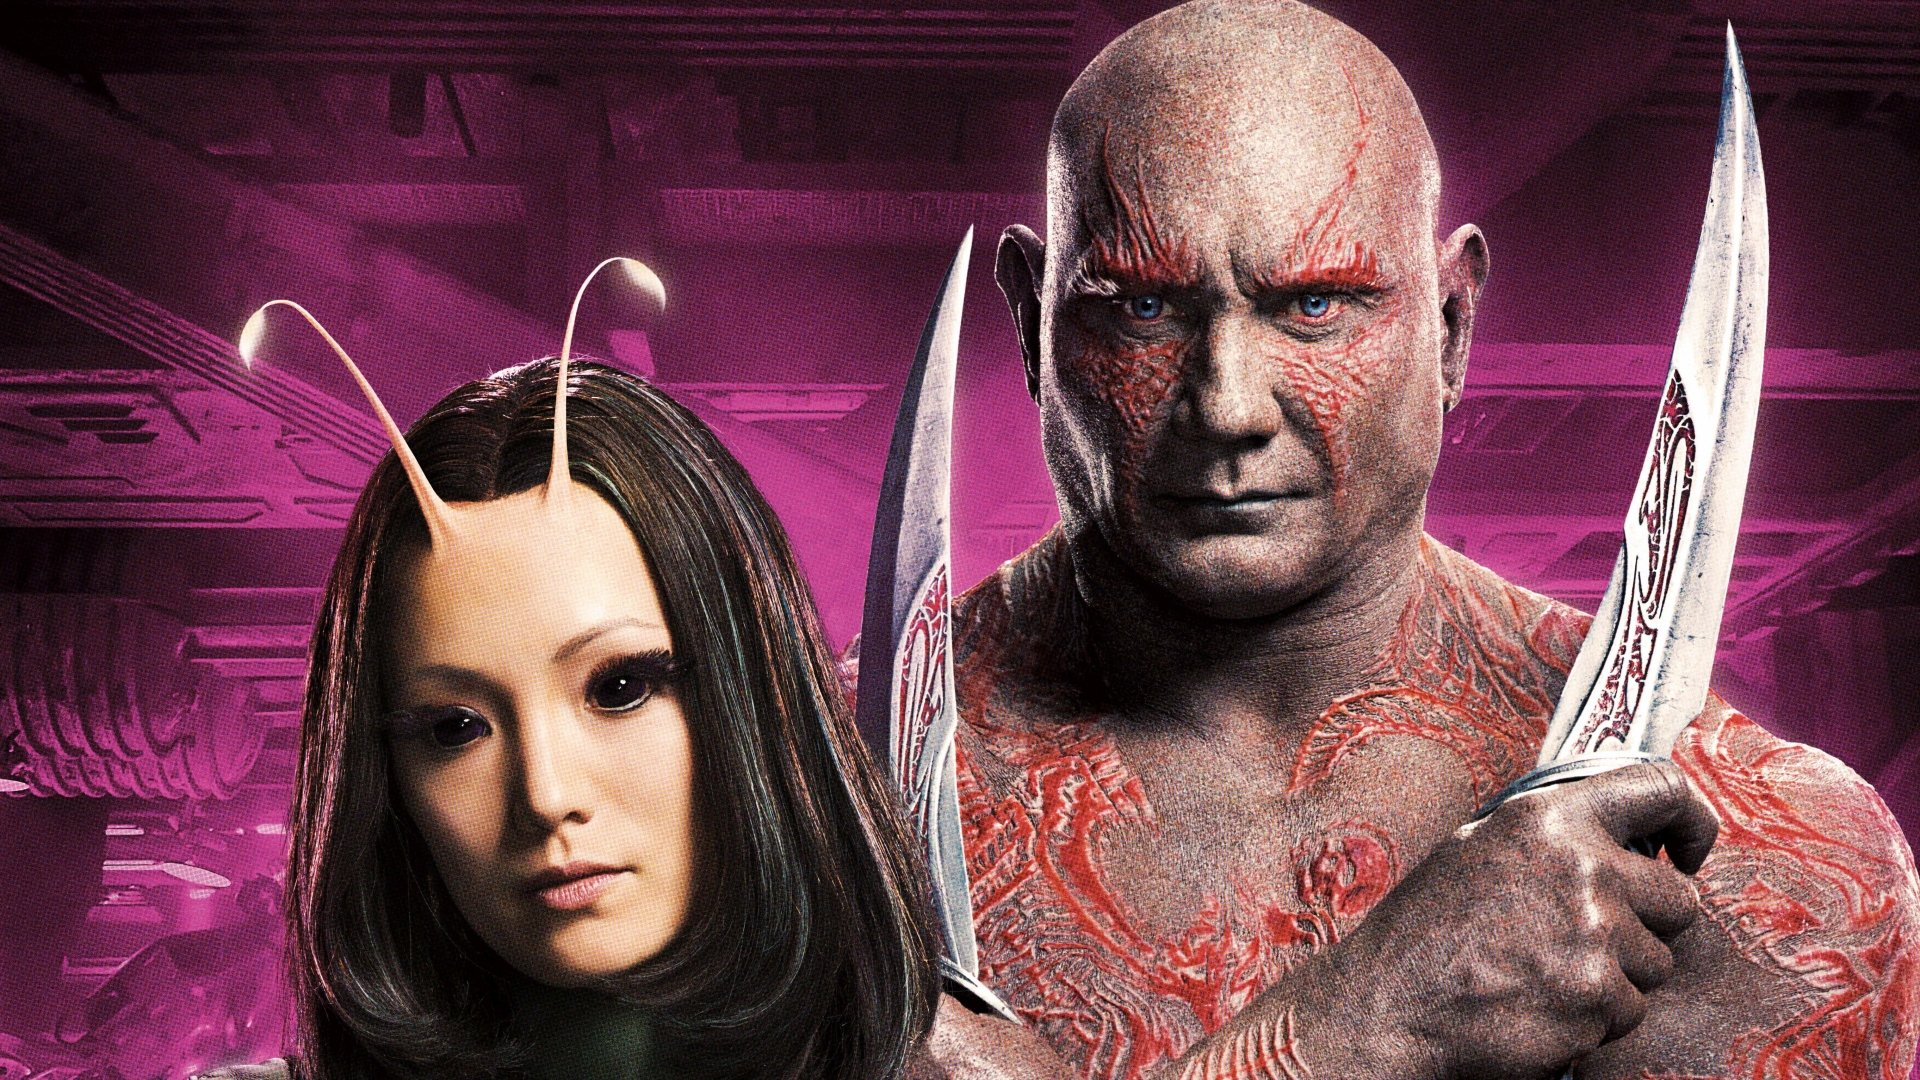 Movie - Guardians of the Galaxy Vol. 2  Dave Bautista Drax The Destroyer Mantis (Marvel Comics) Pom Klementieff Wallpaper